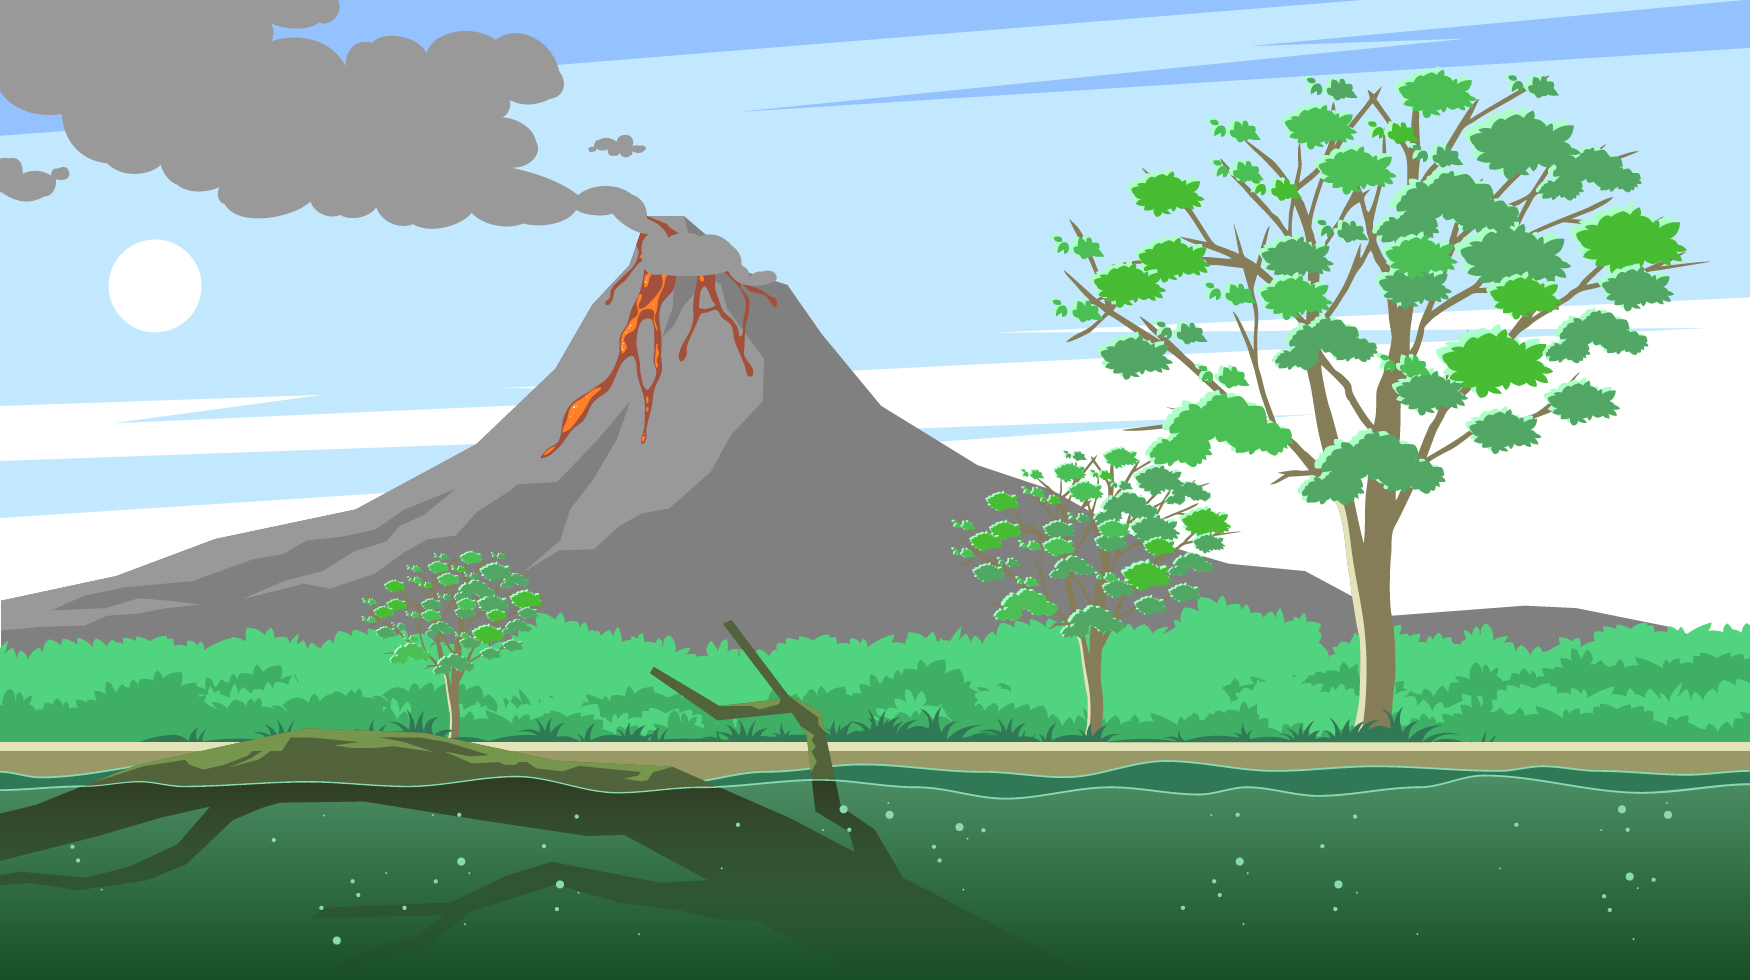 Sleeping Cute Baby Wallpaper Gum Tree And The Volcano Free Vector Download Free